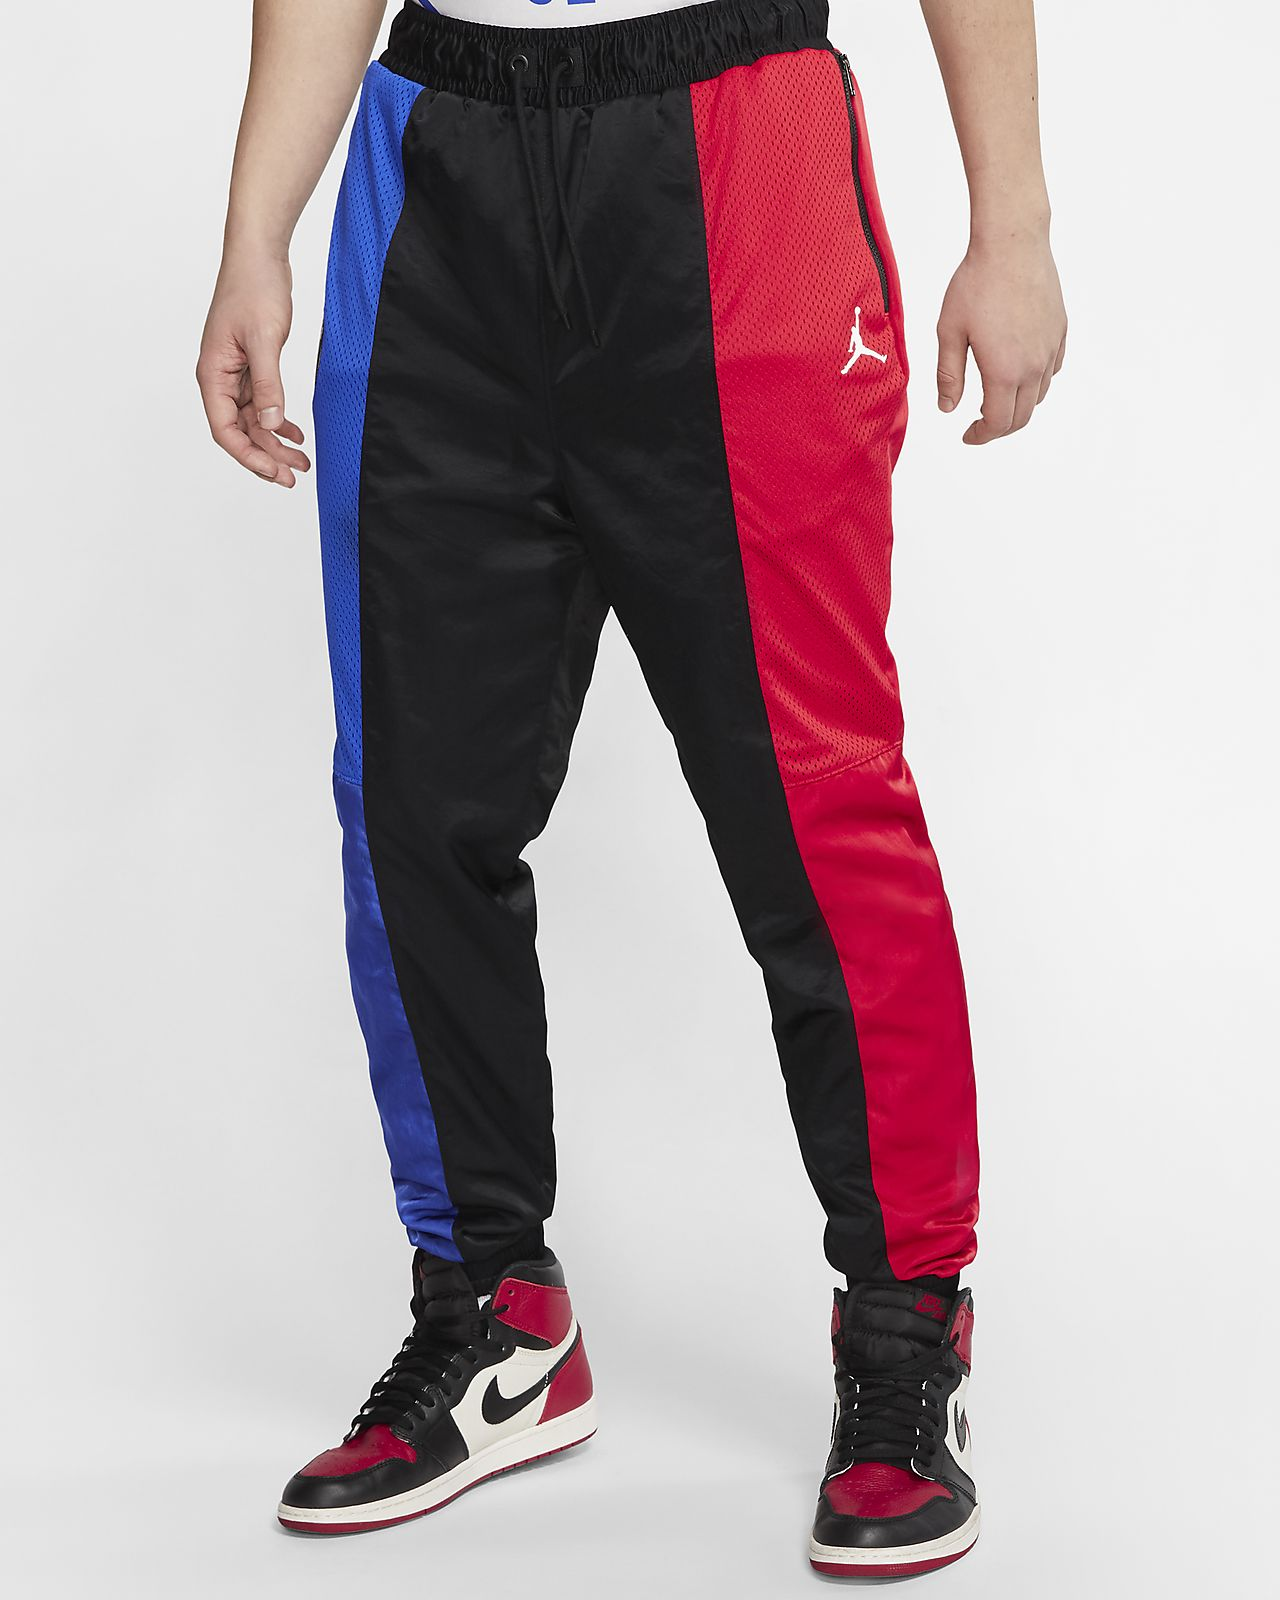 Paris Saint-Germain Men's Pants